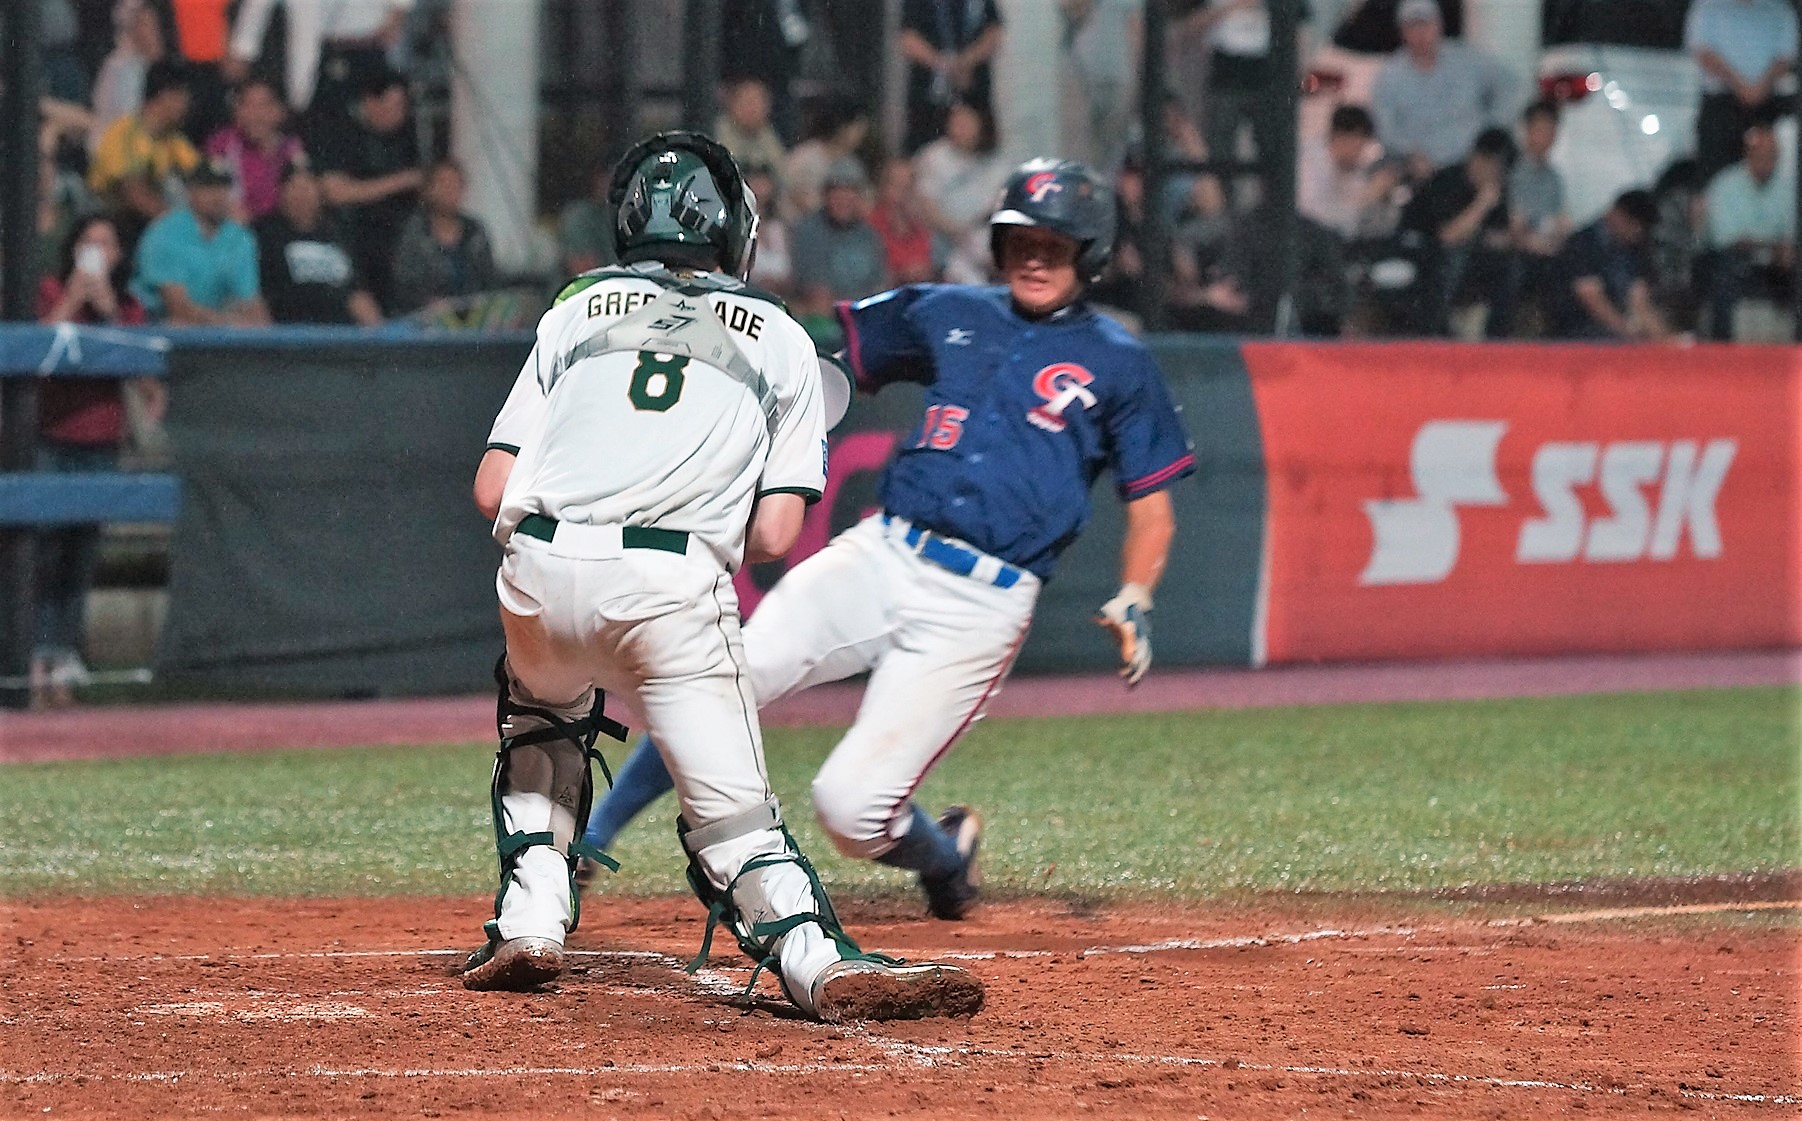 Chinese Taipei even lost a runner at home